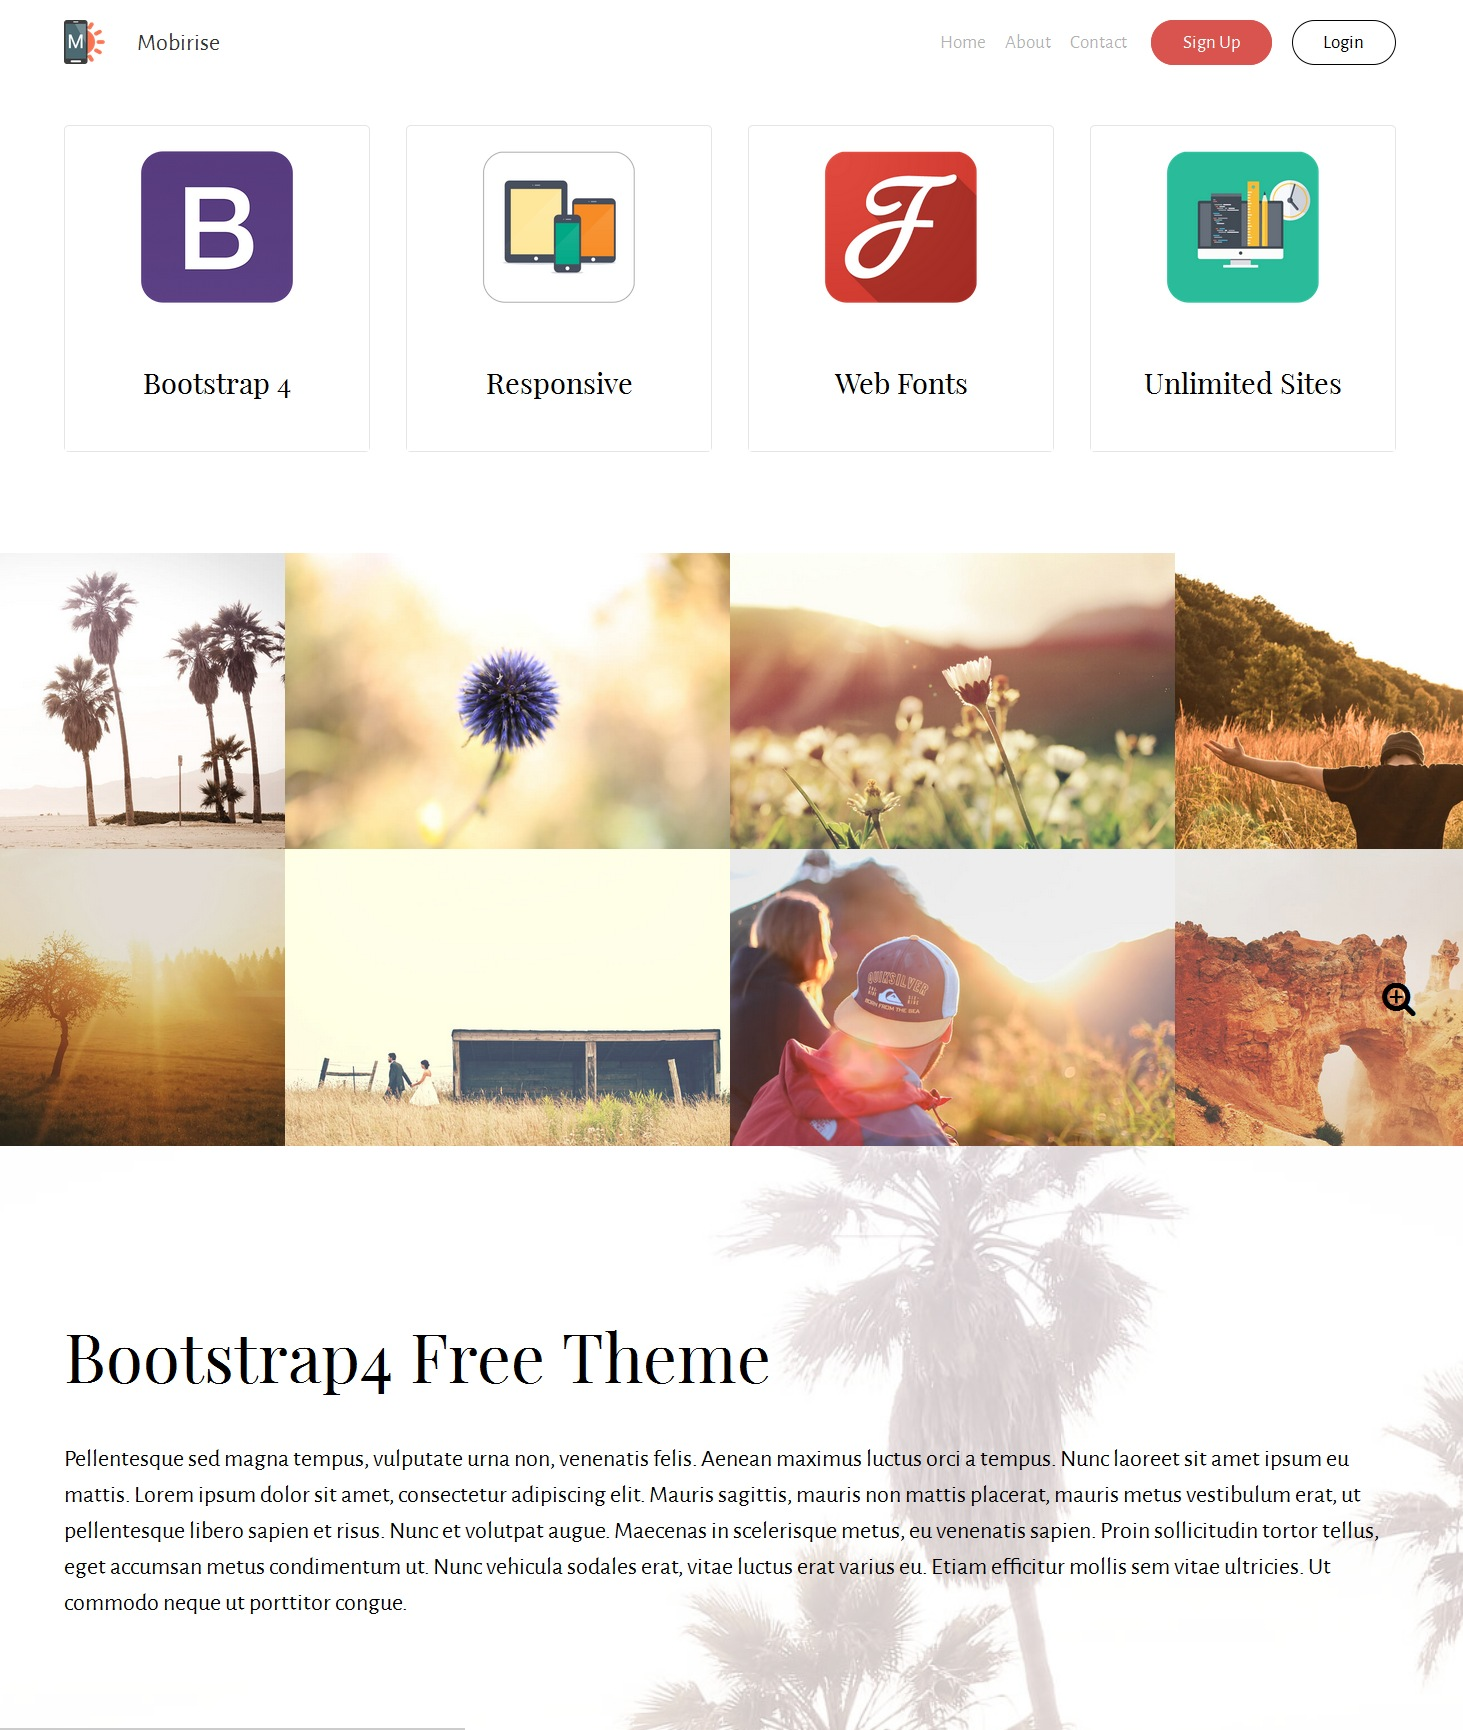 Mobile Bootstrap Landing Page Theme